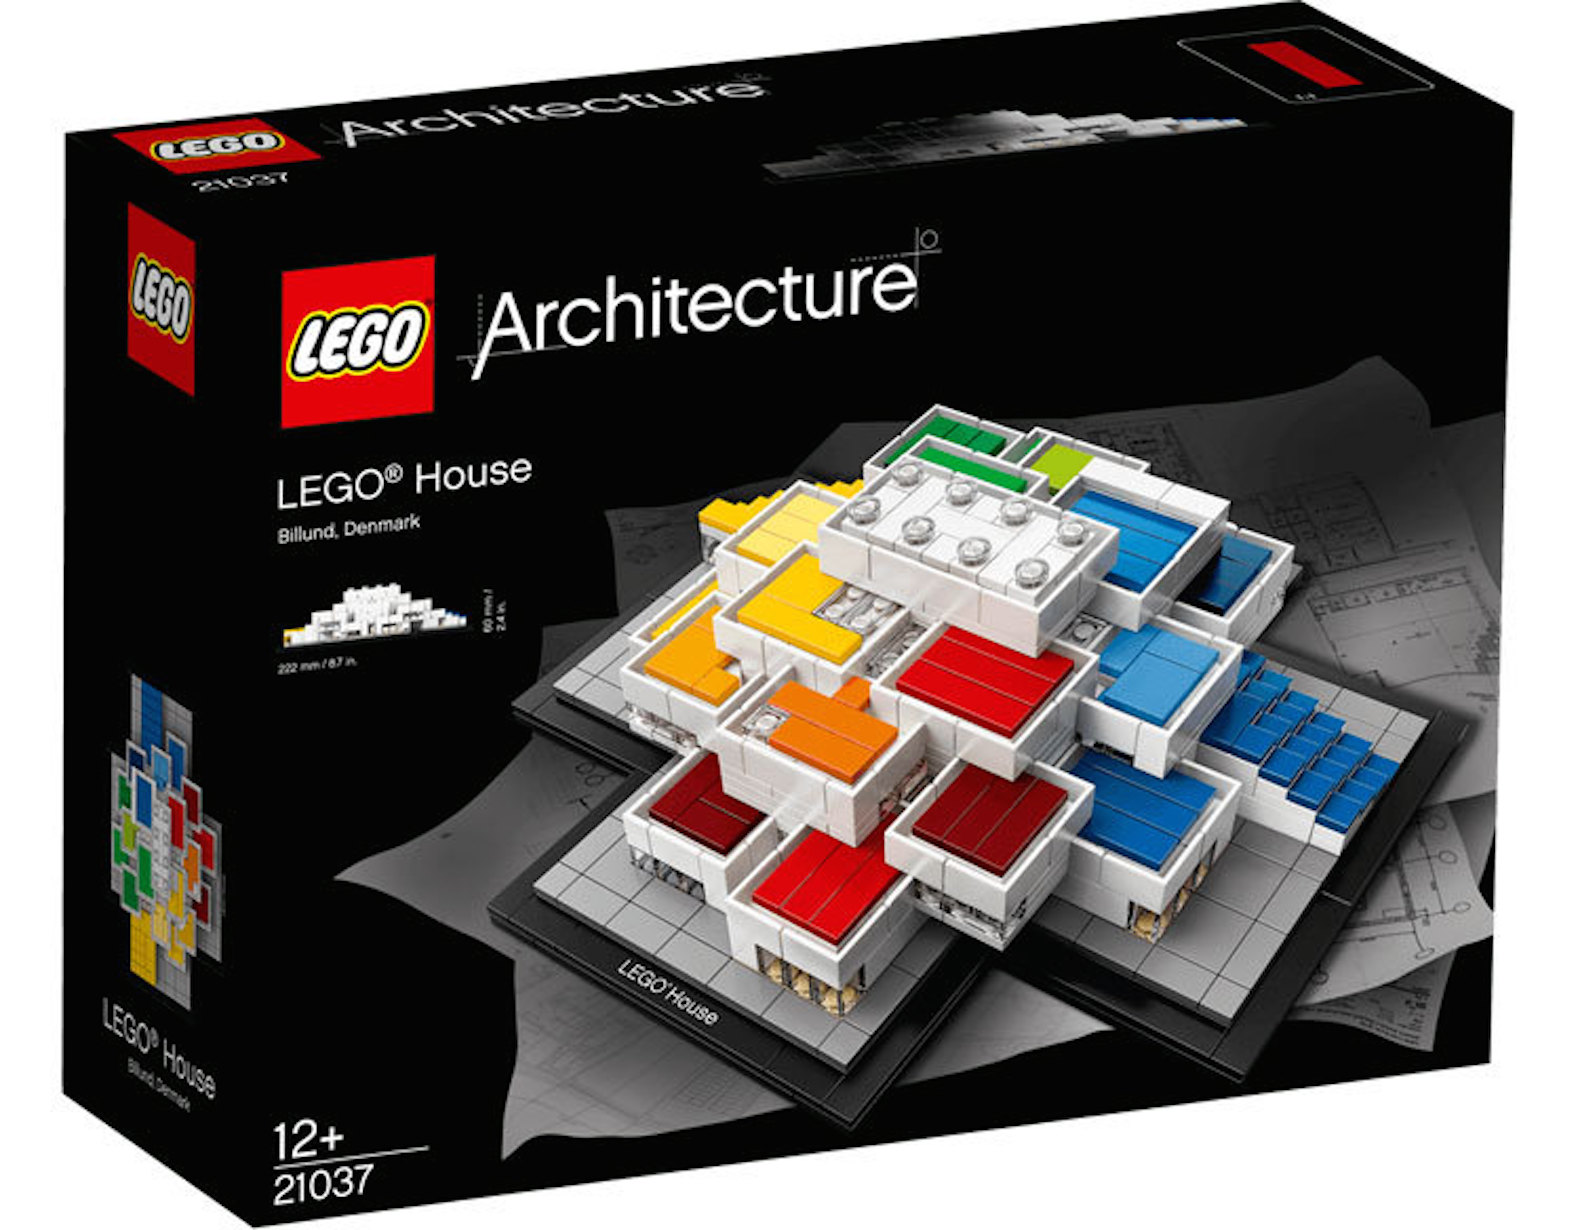 Build your own BIG-designed LEGO House with LEGO Architecture's newest kit